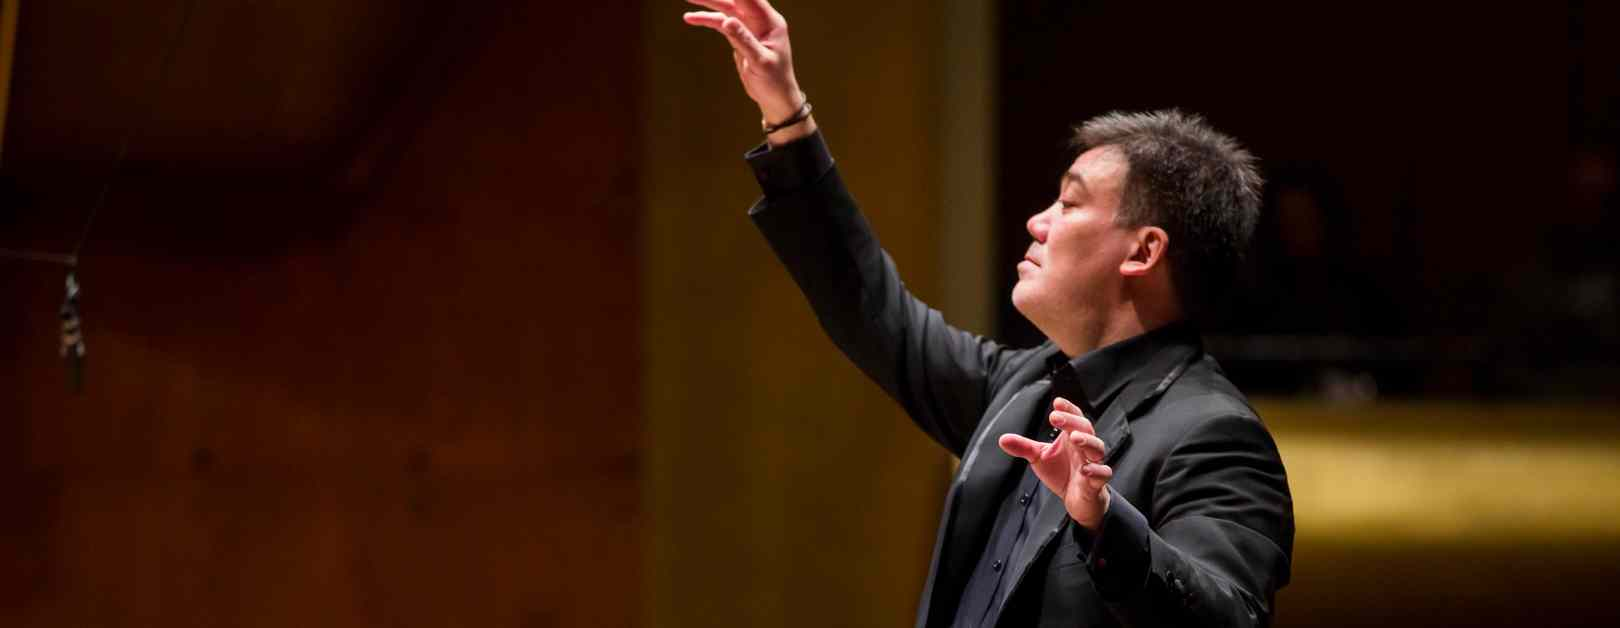 Gilbert Conducts Wagner's Das Rheingold